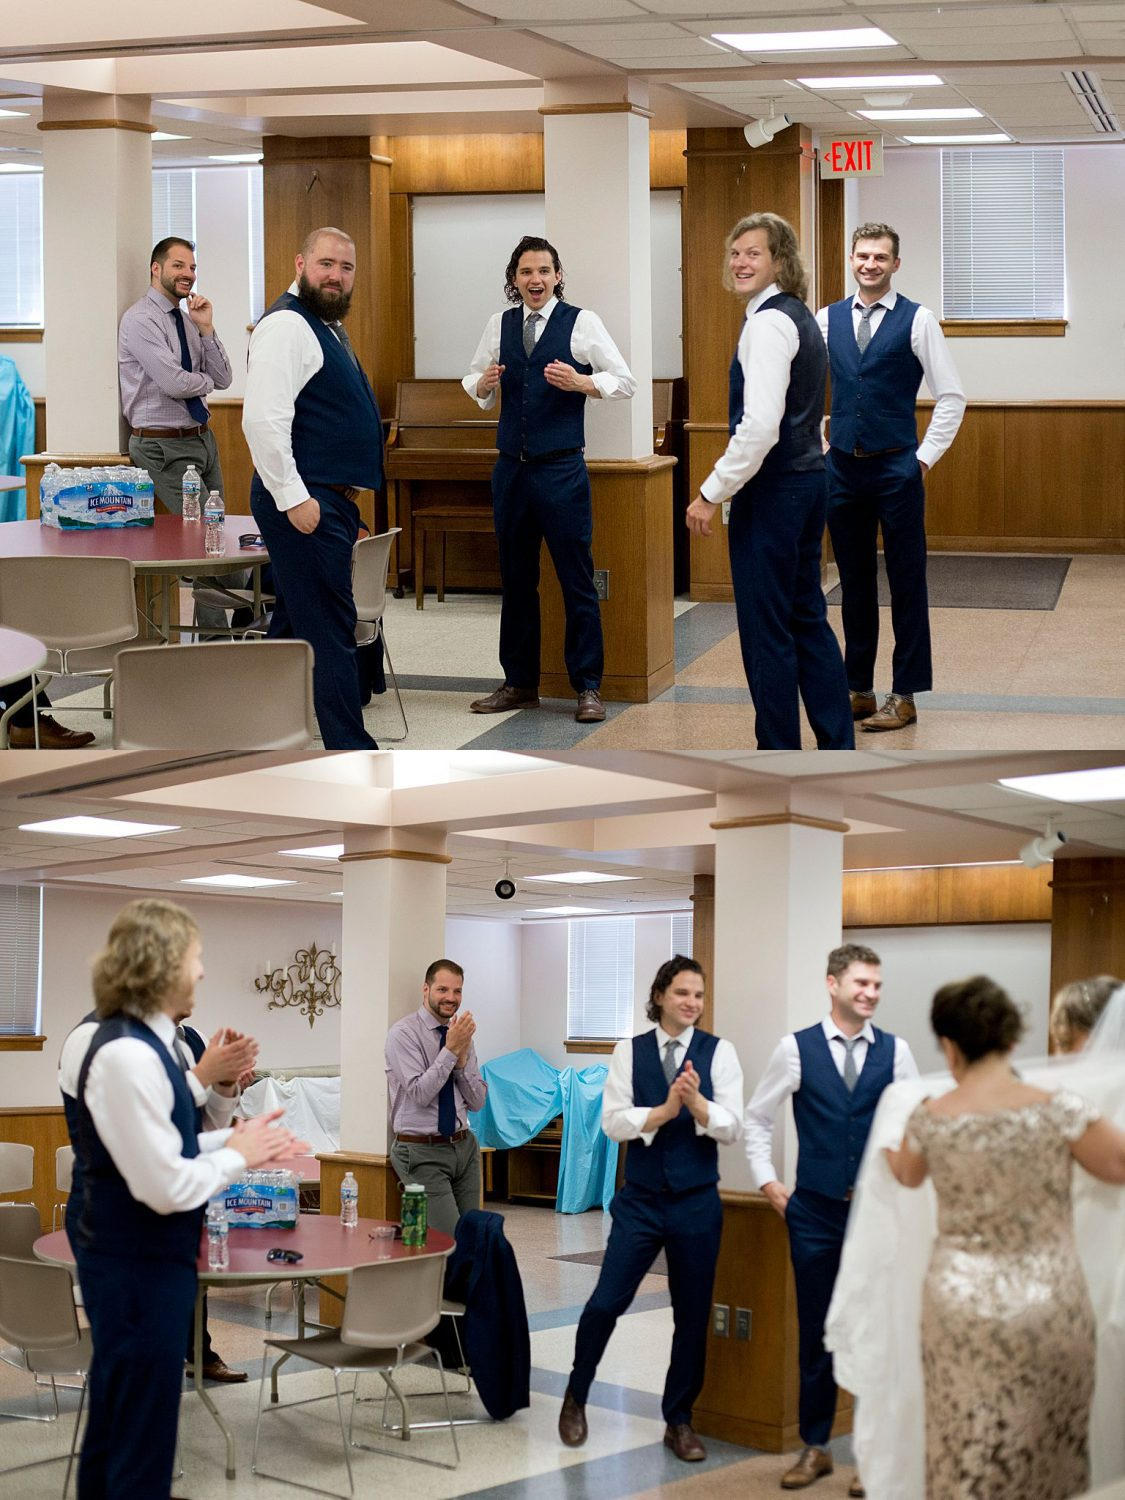 The groomsmen gasp and smile as they see the bride walk by for the first time.